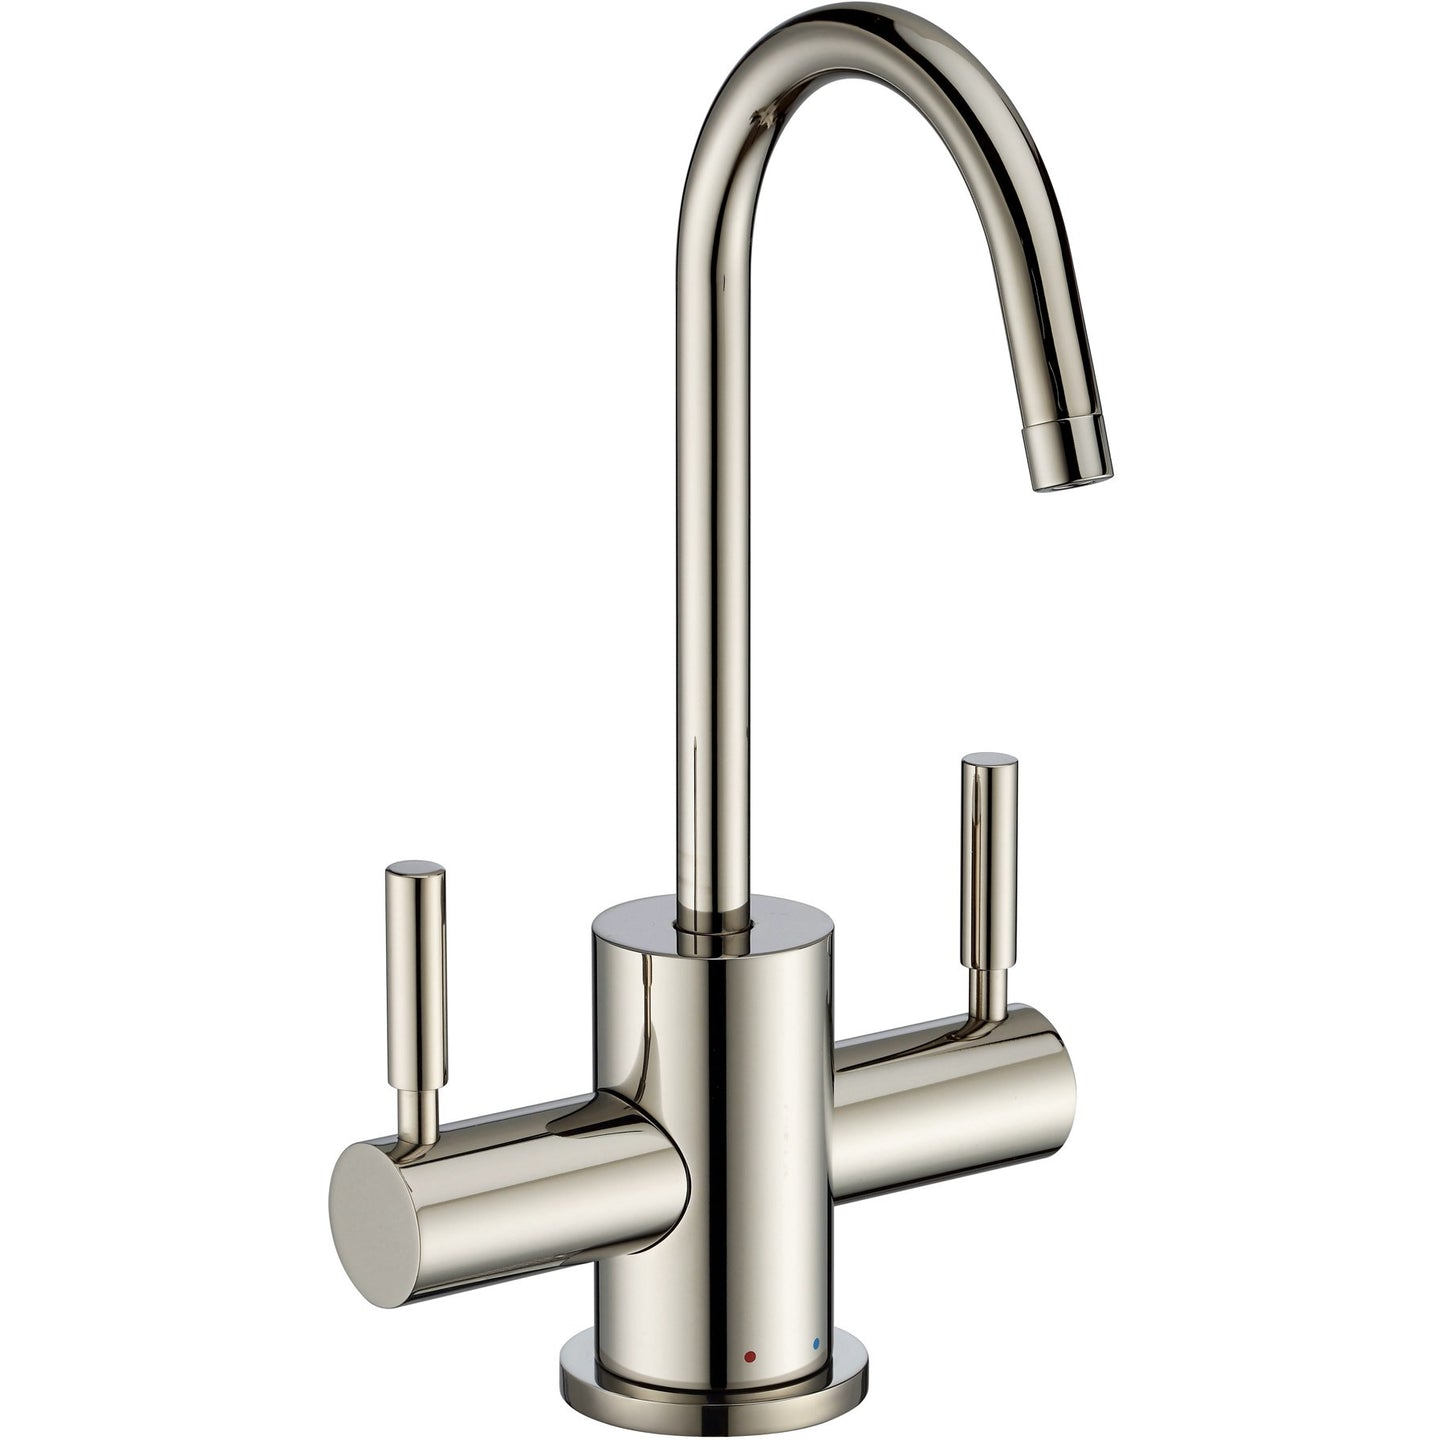 Whitehaus Point of Use Instant Hot/Cold Water Drinking Faucet with Gooseneck Swivel Spout